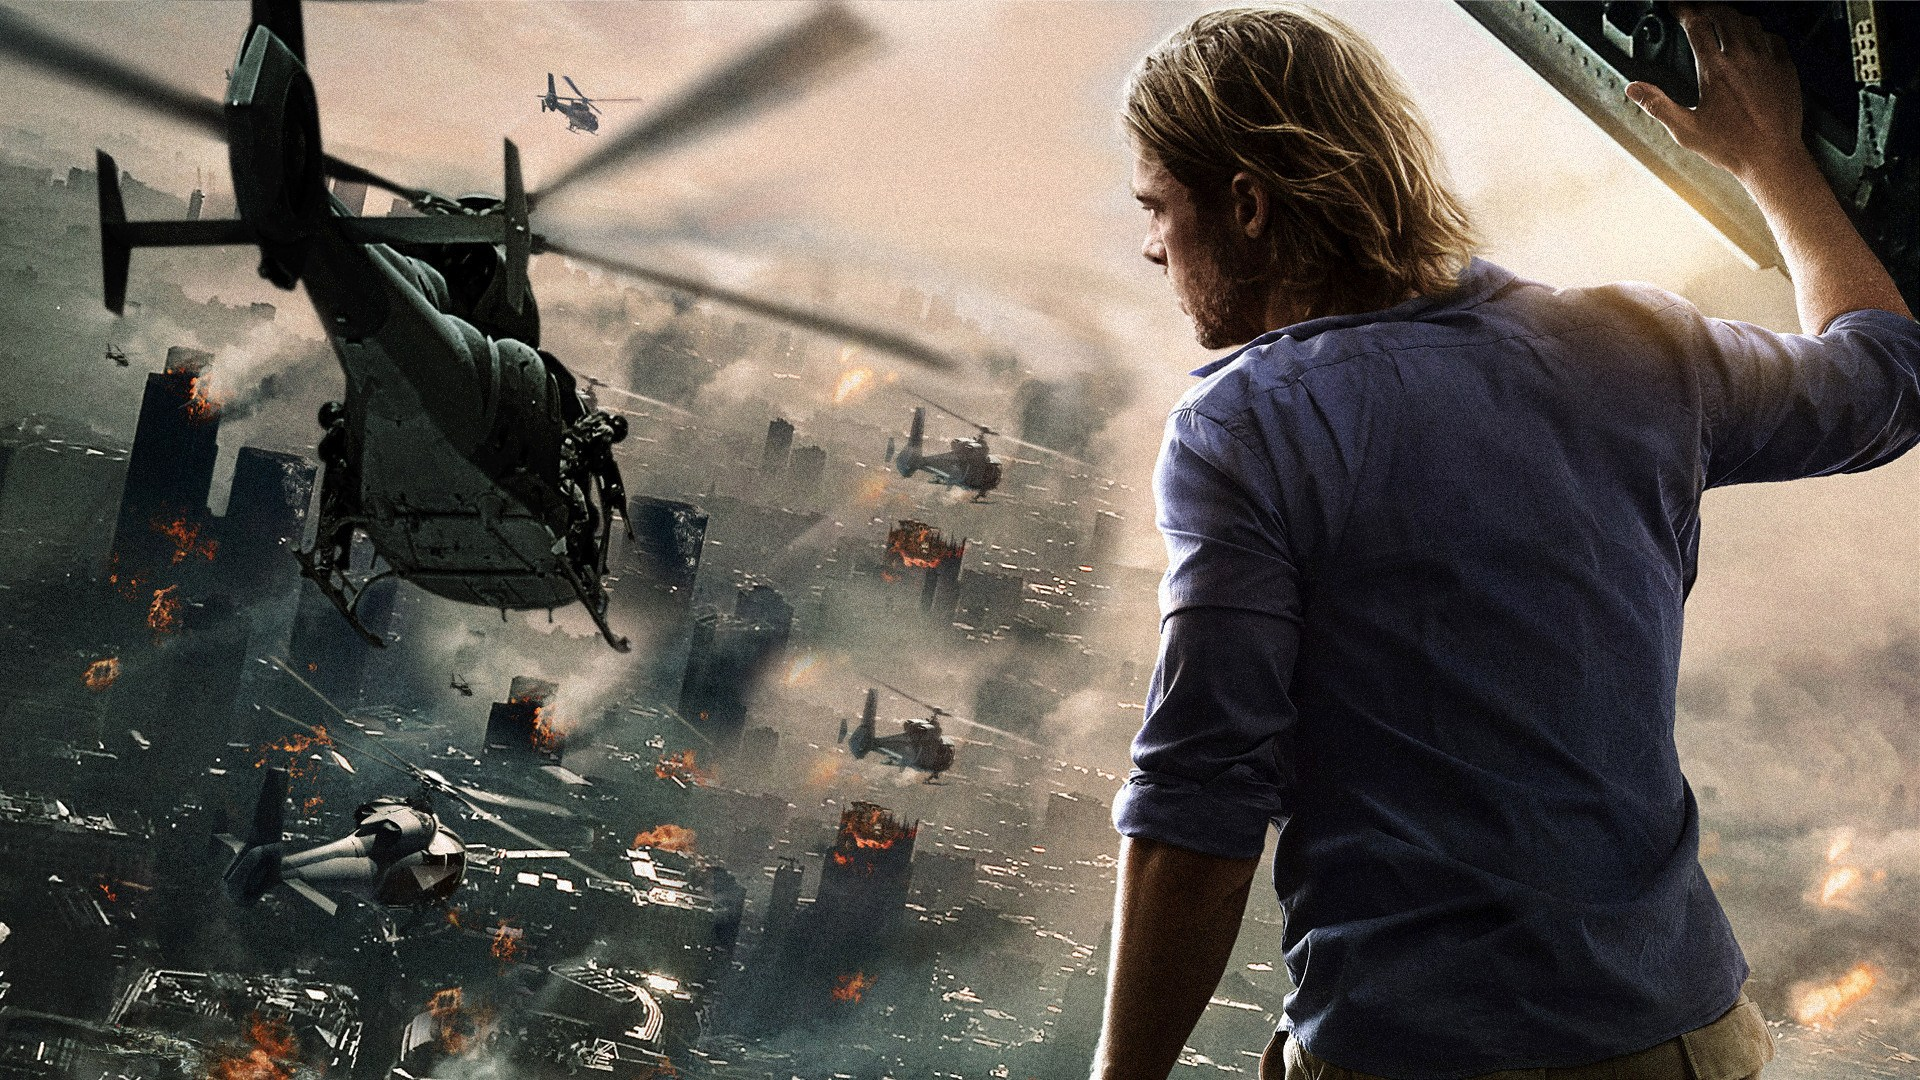 World War Z 2 Filming In Late March, Working Title & Filming